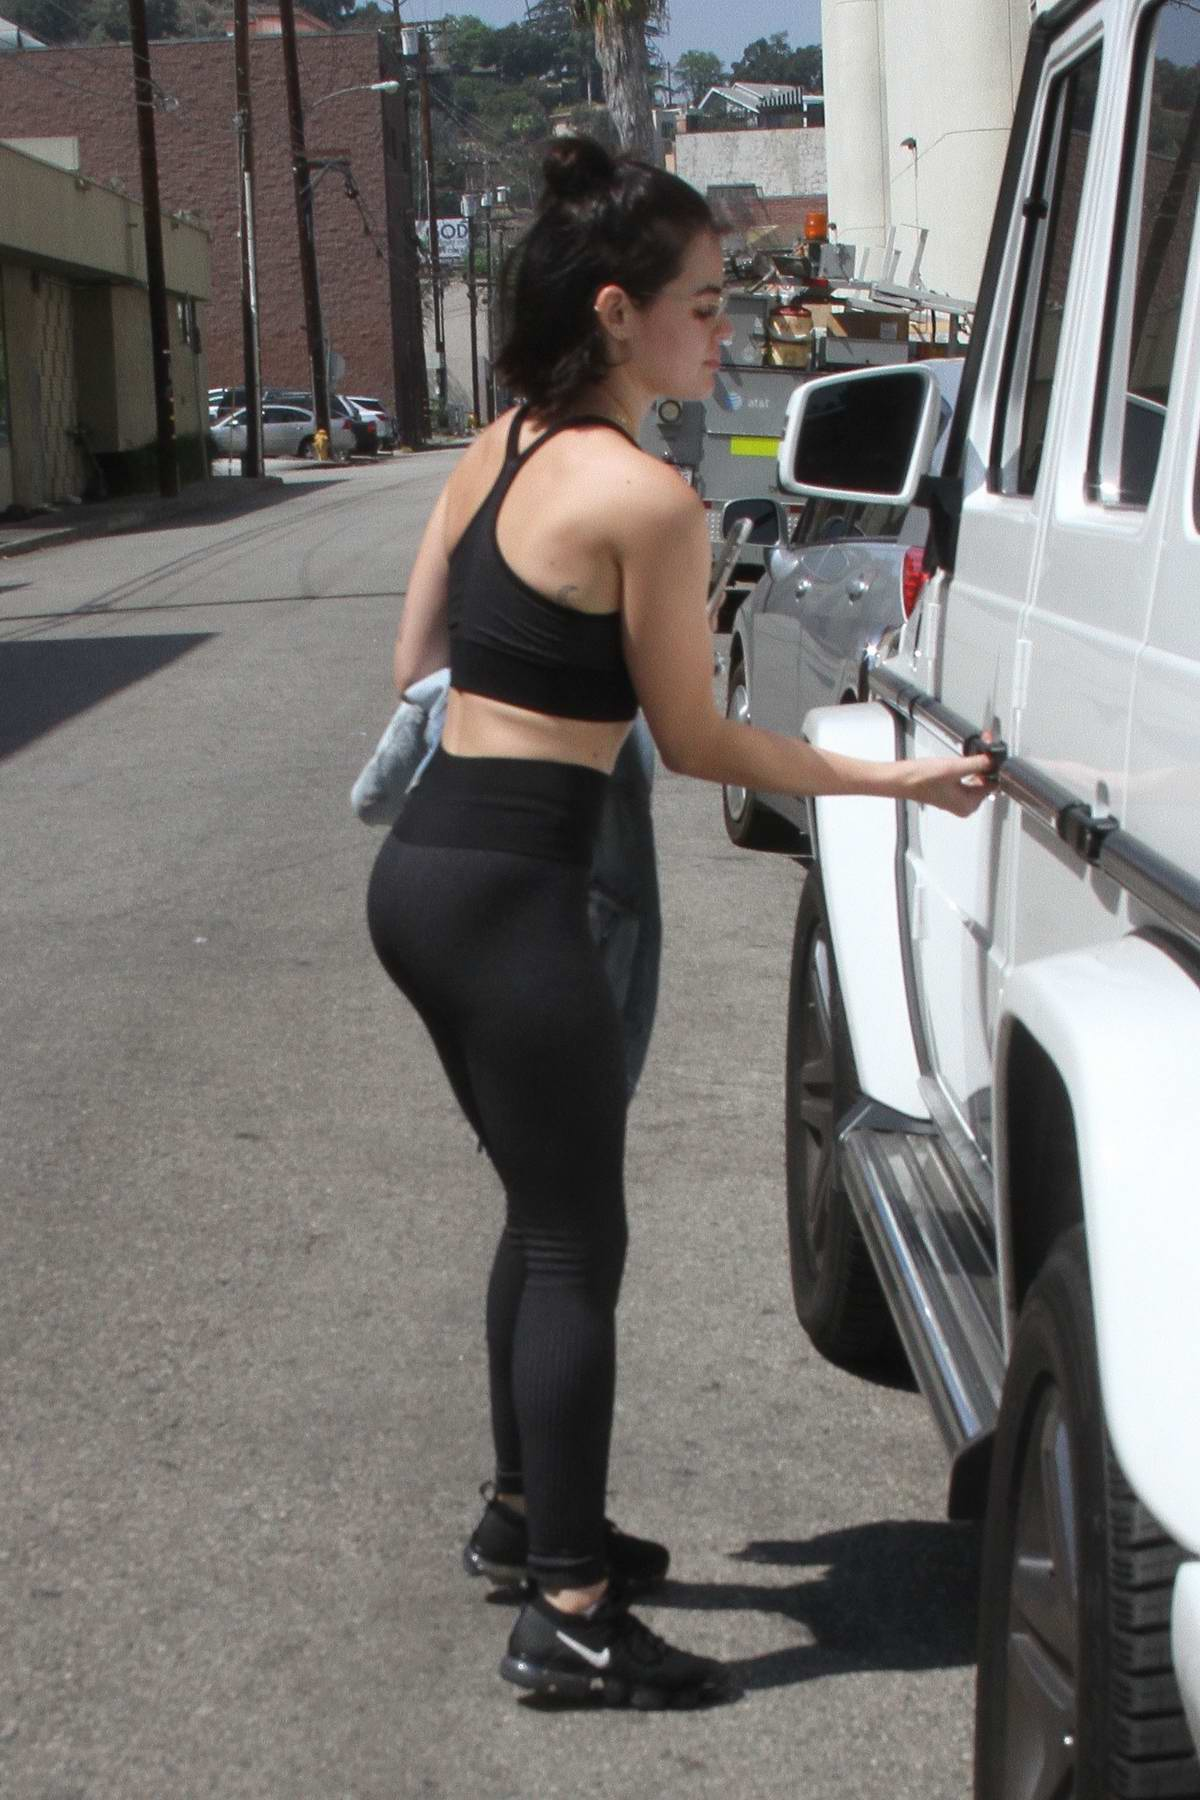 f3494c7a87335 lucy hale heads out in a black sports bra and leggings after a workout  session at a gym in los angeles-010918_9